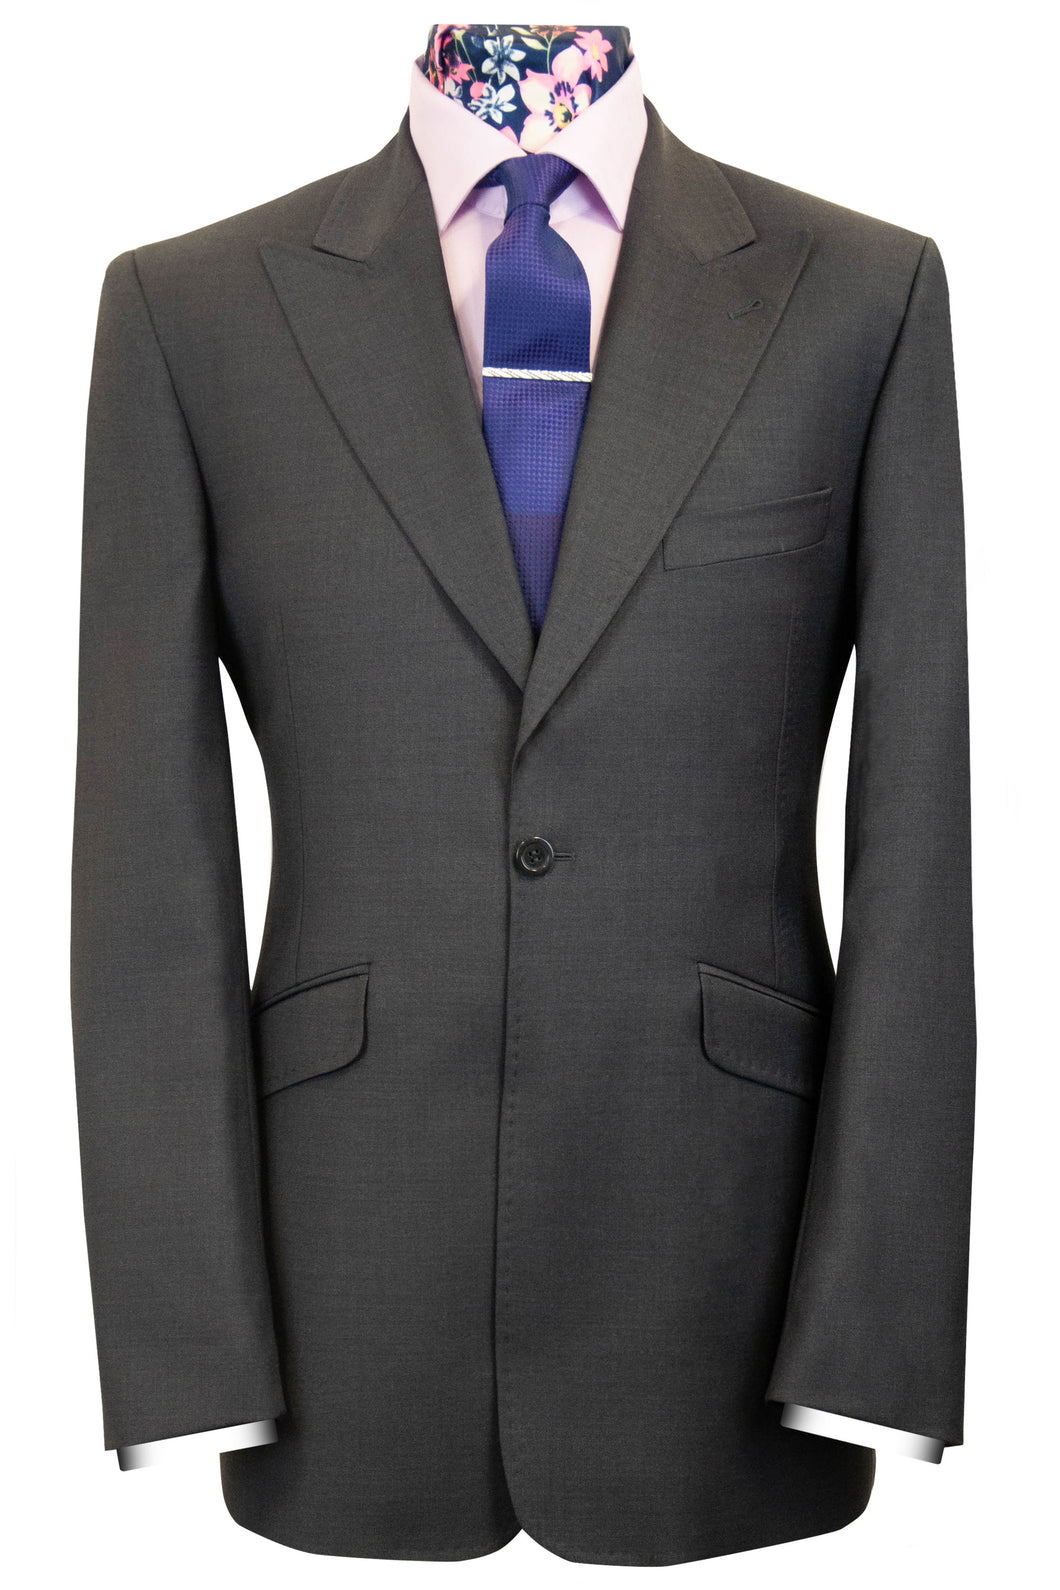 The Daniels Classic Charcoal Suit